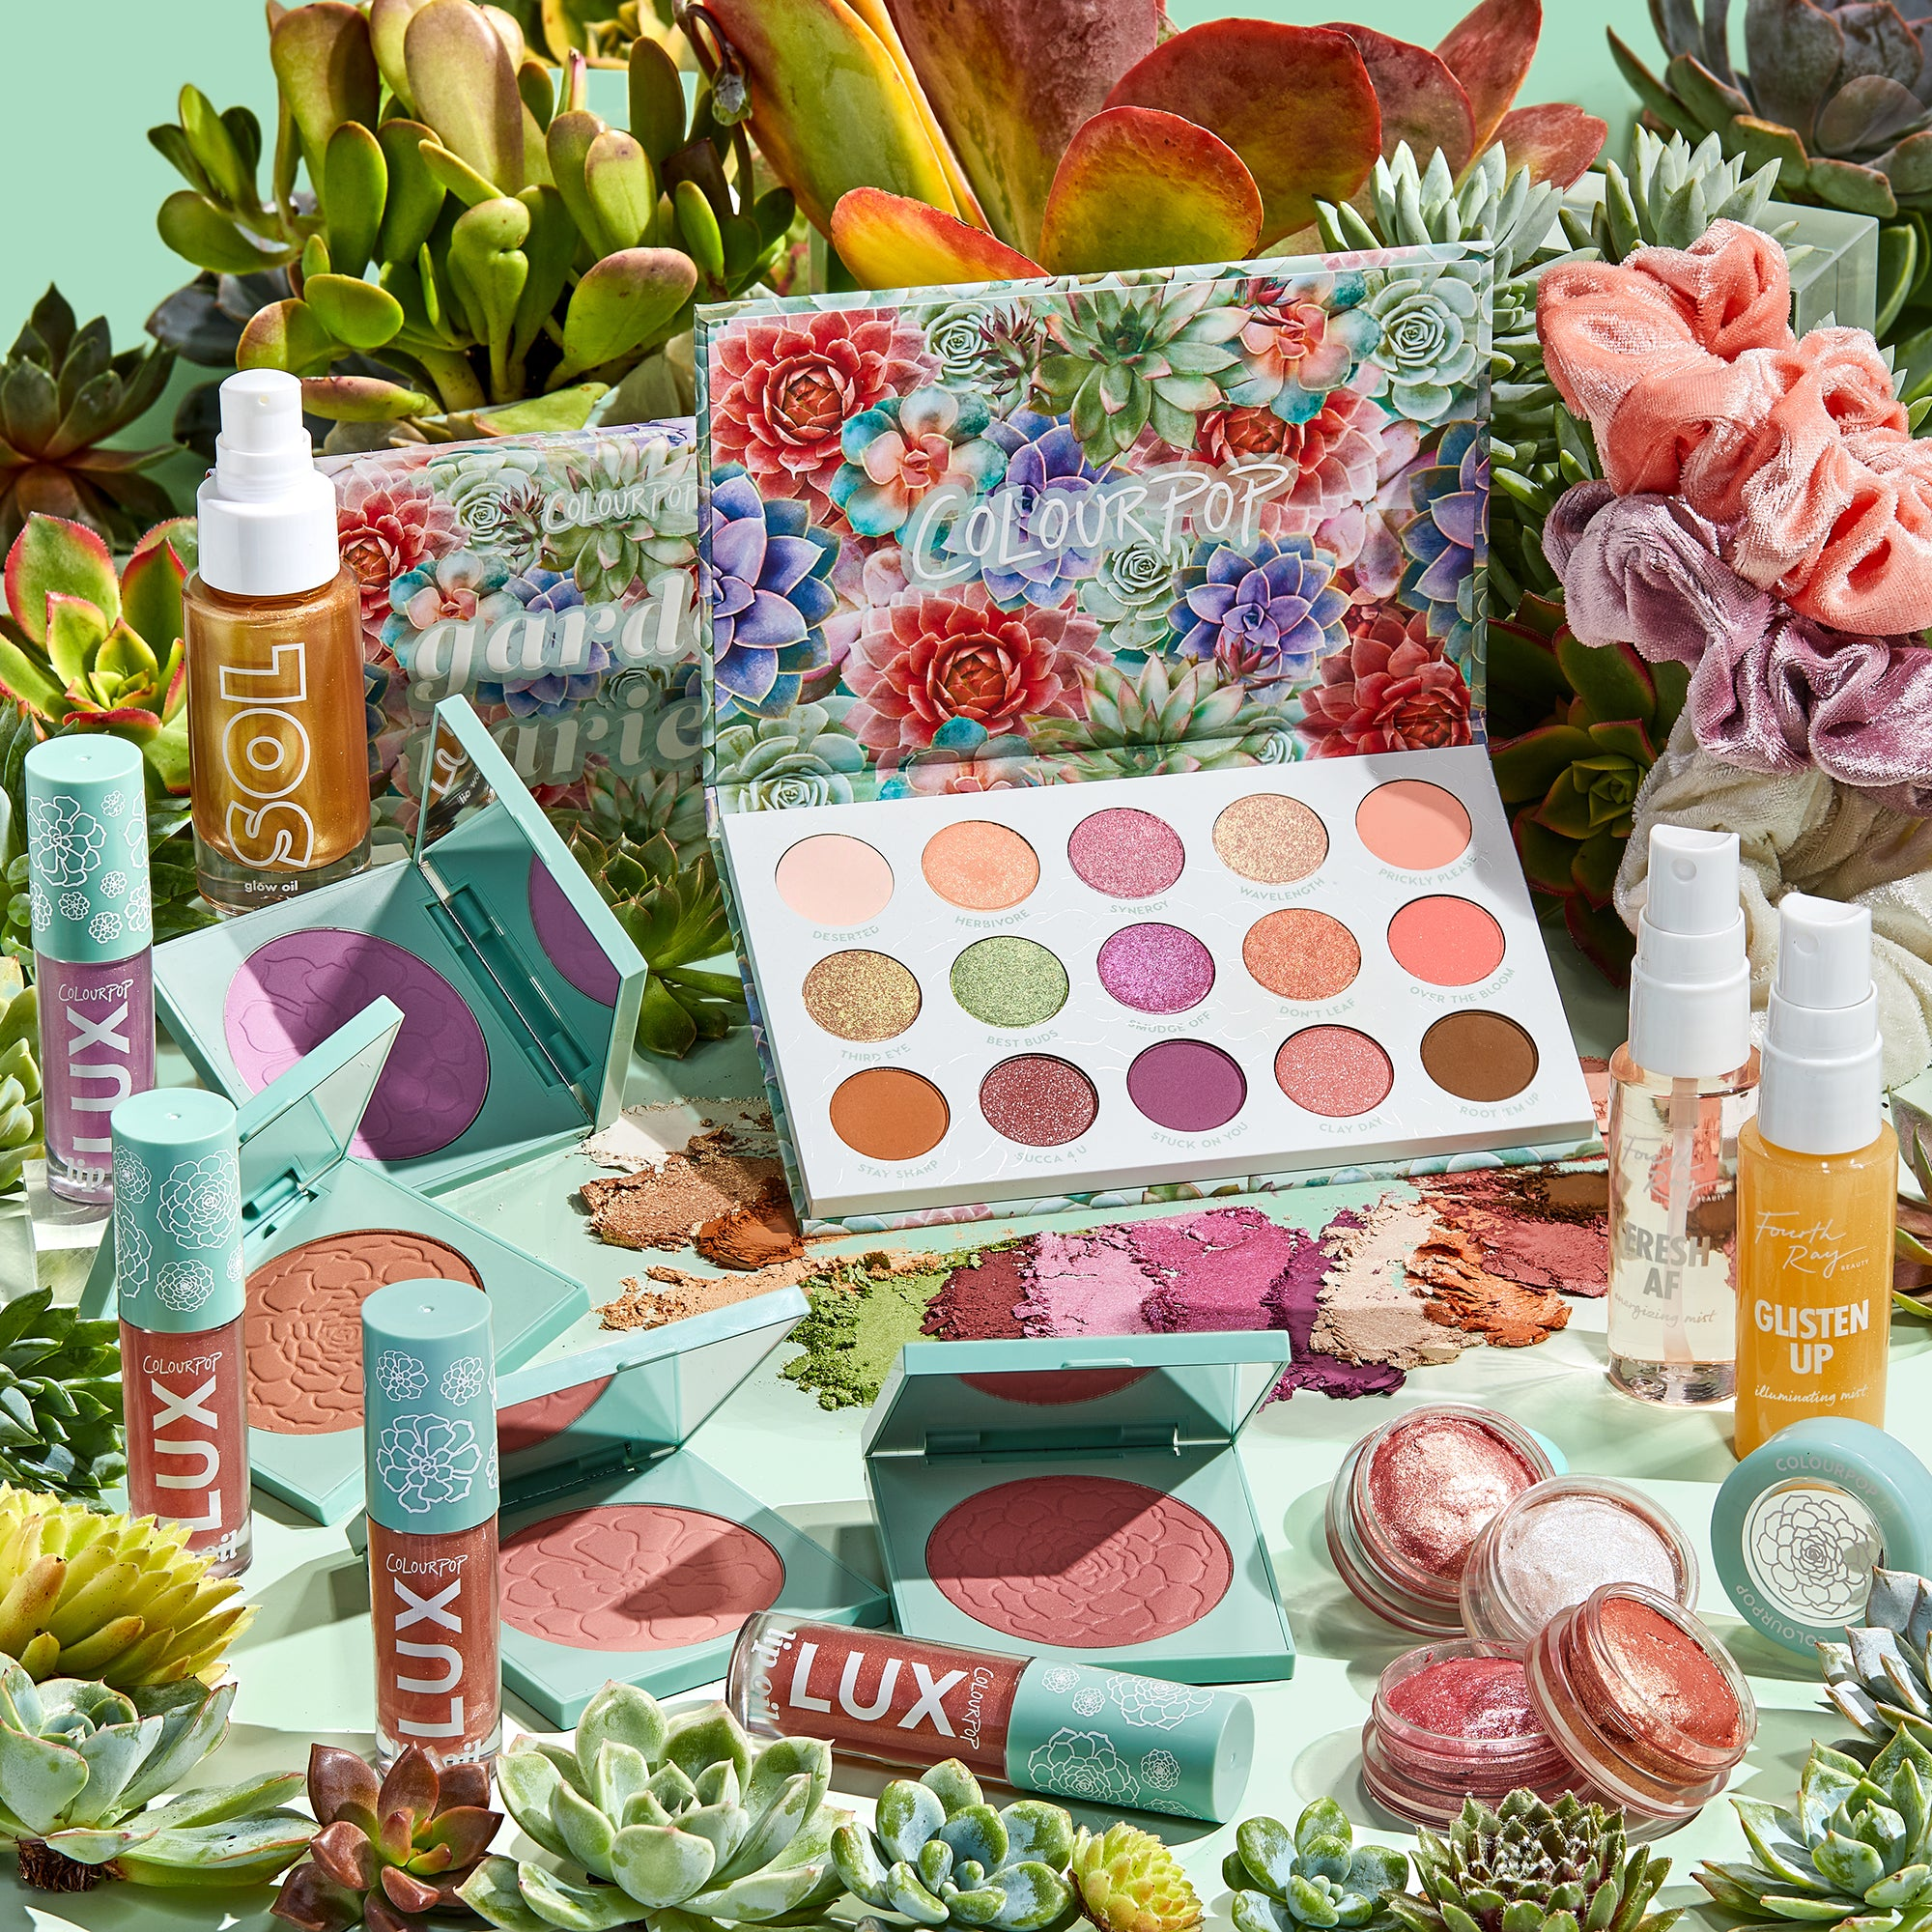 Garden Variety Collection includes Garden Variety eyeshadow palette, jelly much shadows, pressed powder blush compacts, lux lip oils, face mists, scrunchies, and body glow oil